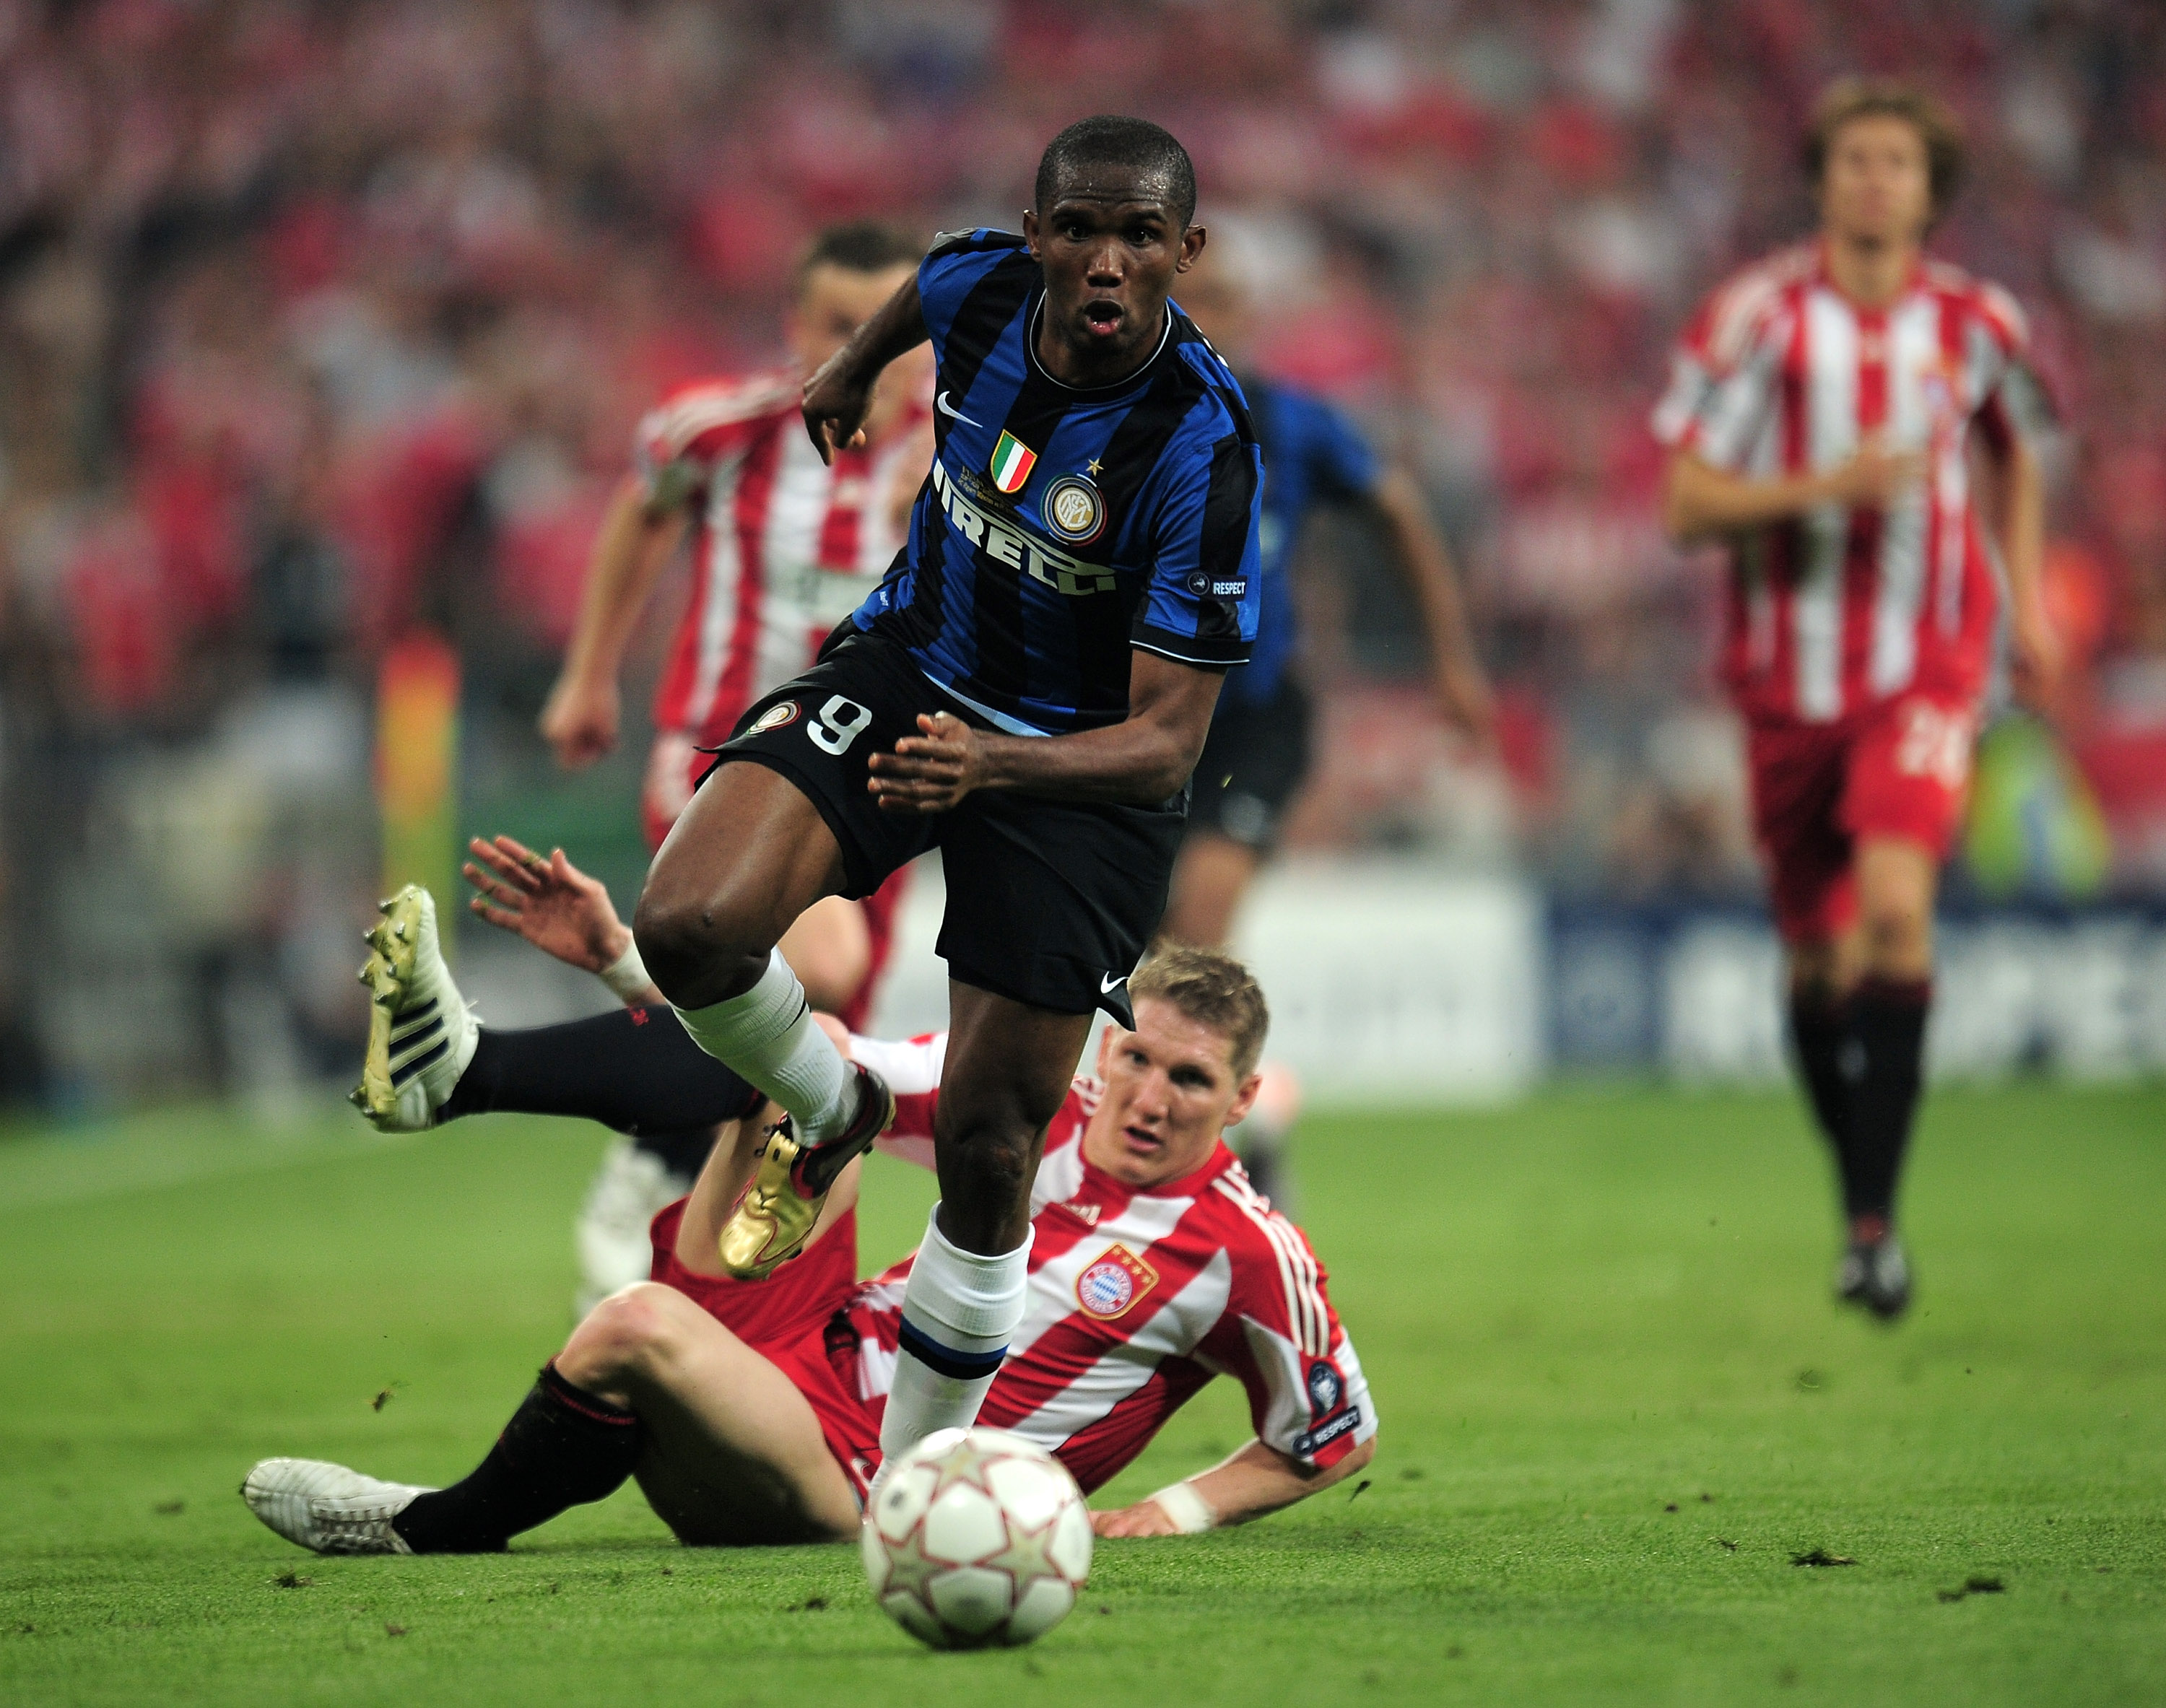 MADRID, SPAIN - MAY 22:  Samuel Eto'o of Inter Milan is challenged by Bastian Schweinsteiger of Bayern Muenchen during the UEFA Champions League Final match between FC Bayern Muenchen and Inter Milan at the Estadio Santiago Bernabeu on May 22, 2010 in Mad